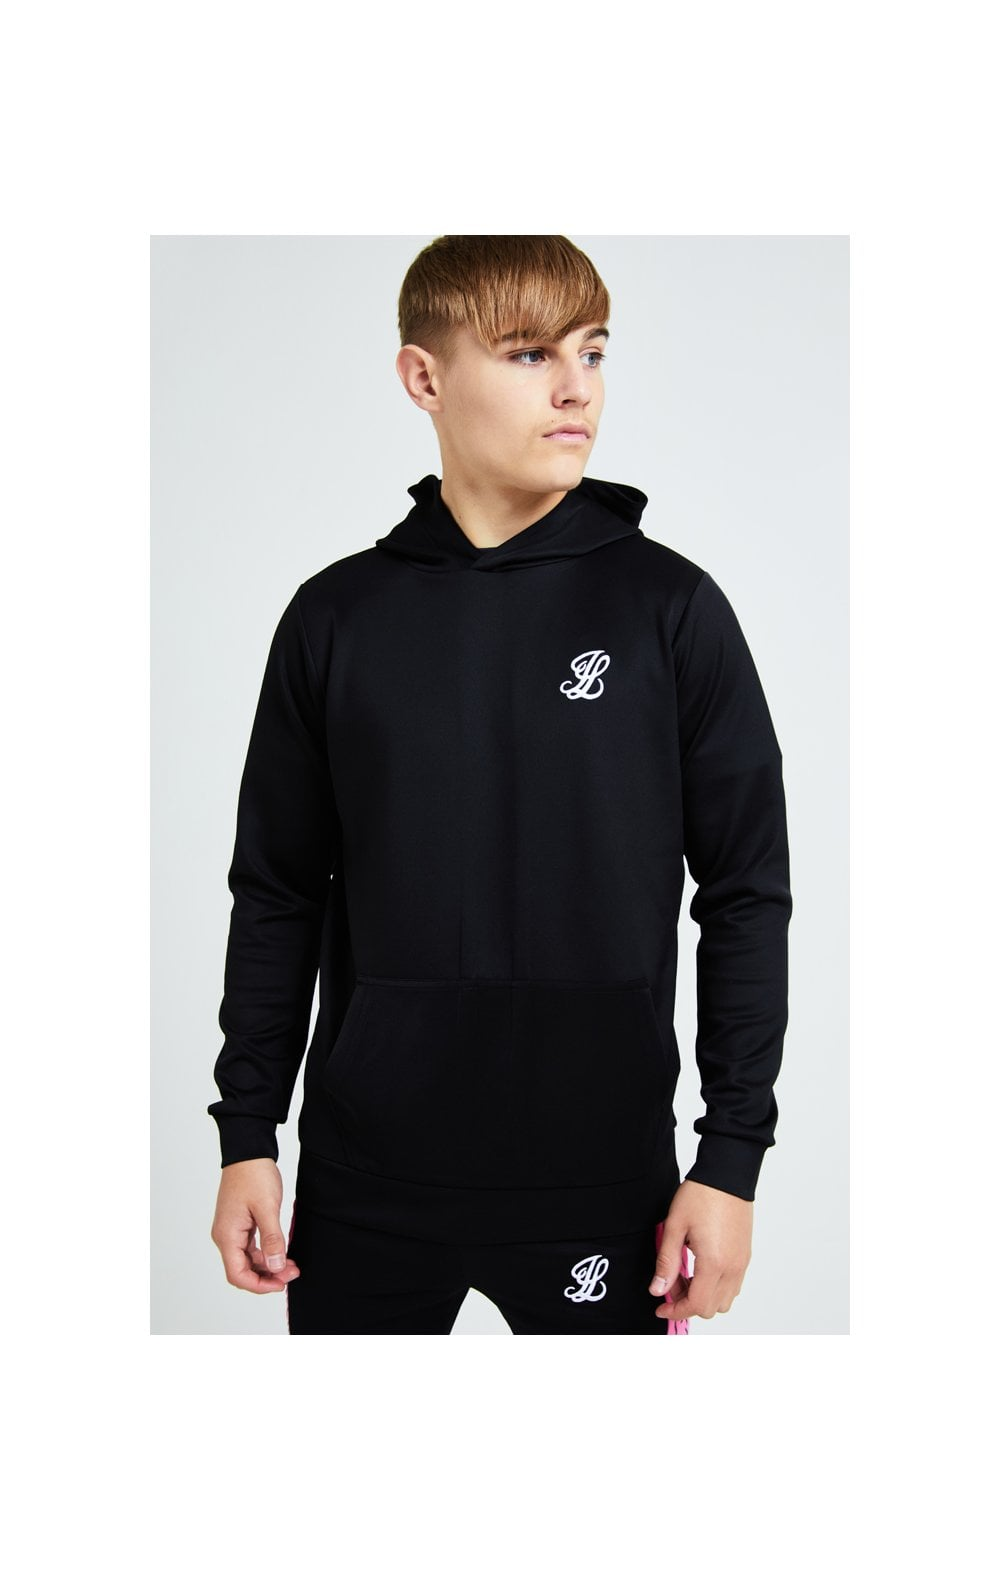 Illusive London Flux Taped Overhead Hoodie - Black & Pink (1)